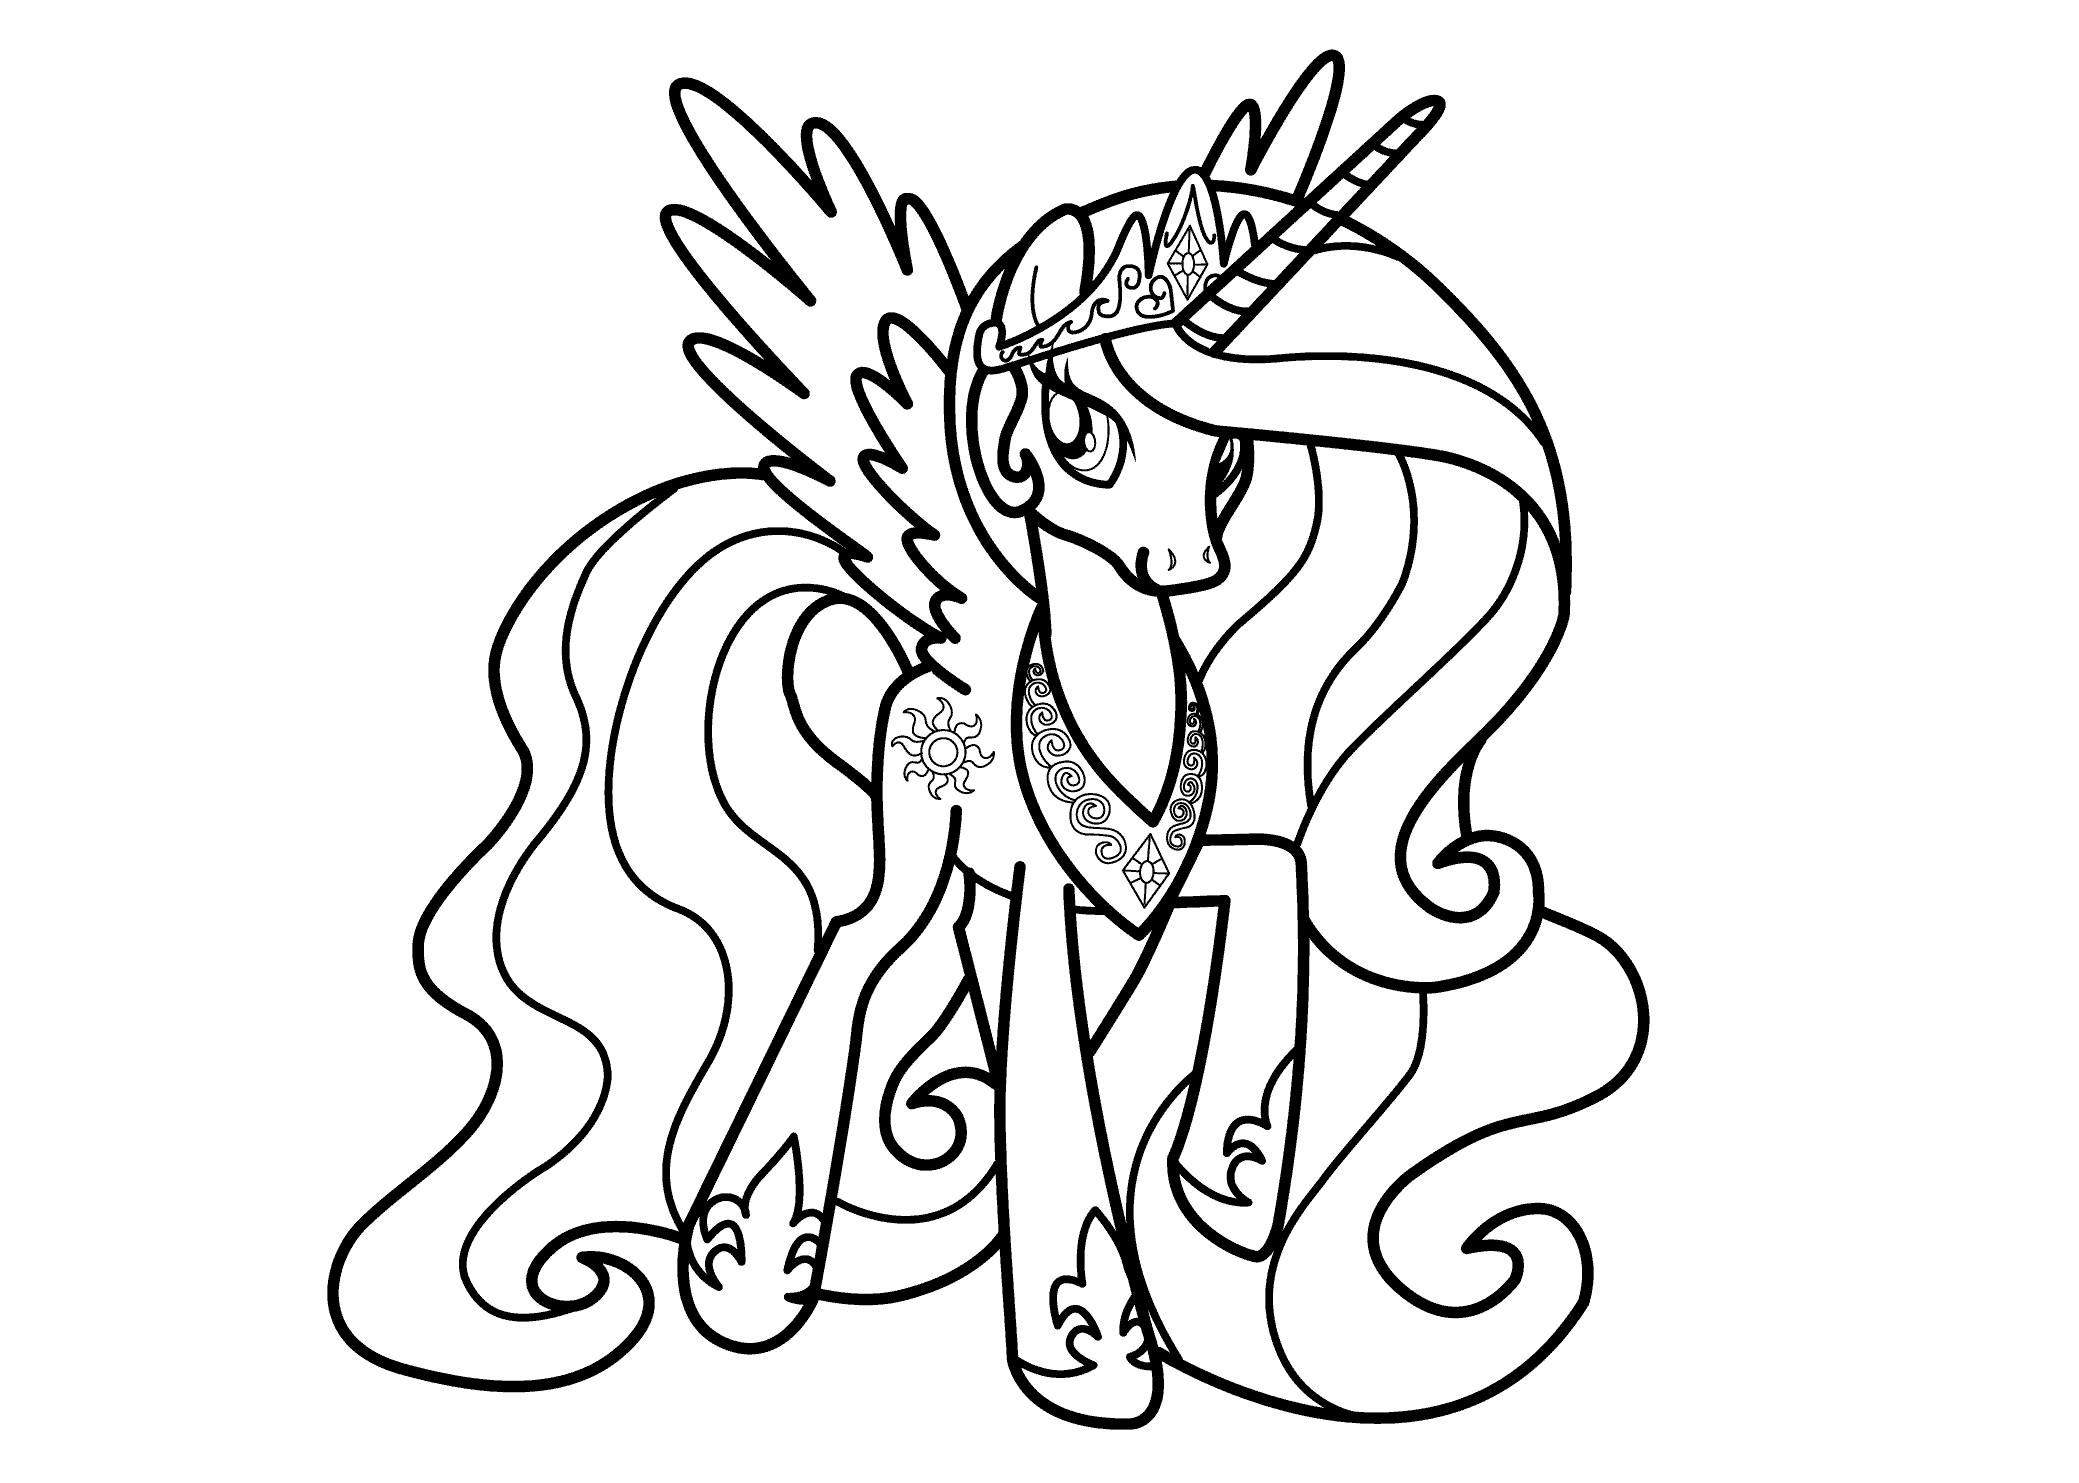 nightmare moon pony coloring page free nightmare moon coloring pages download free clip art page coloring pony nightmare moon